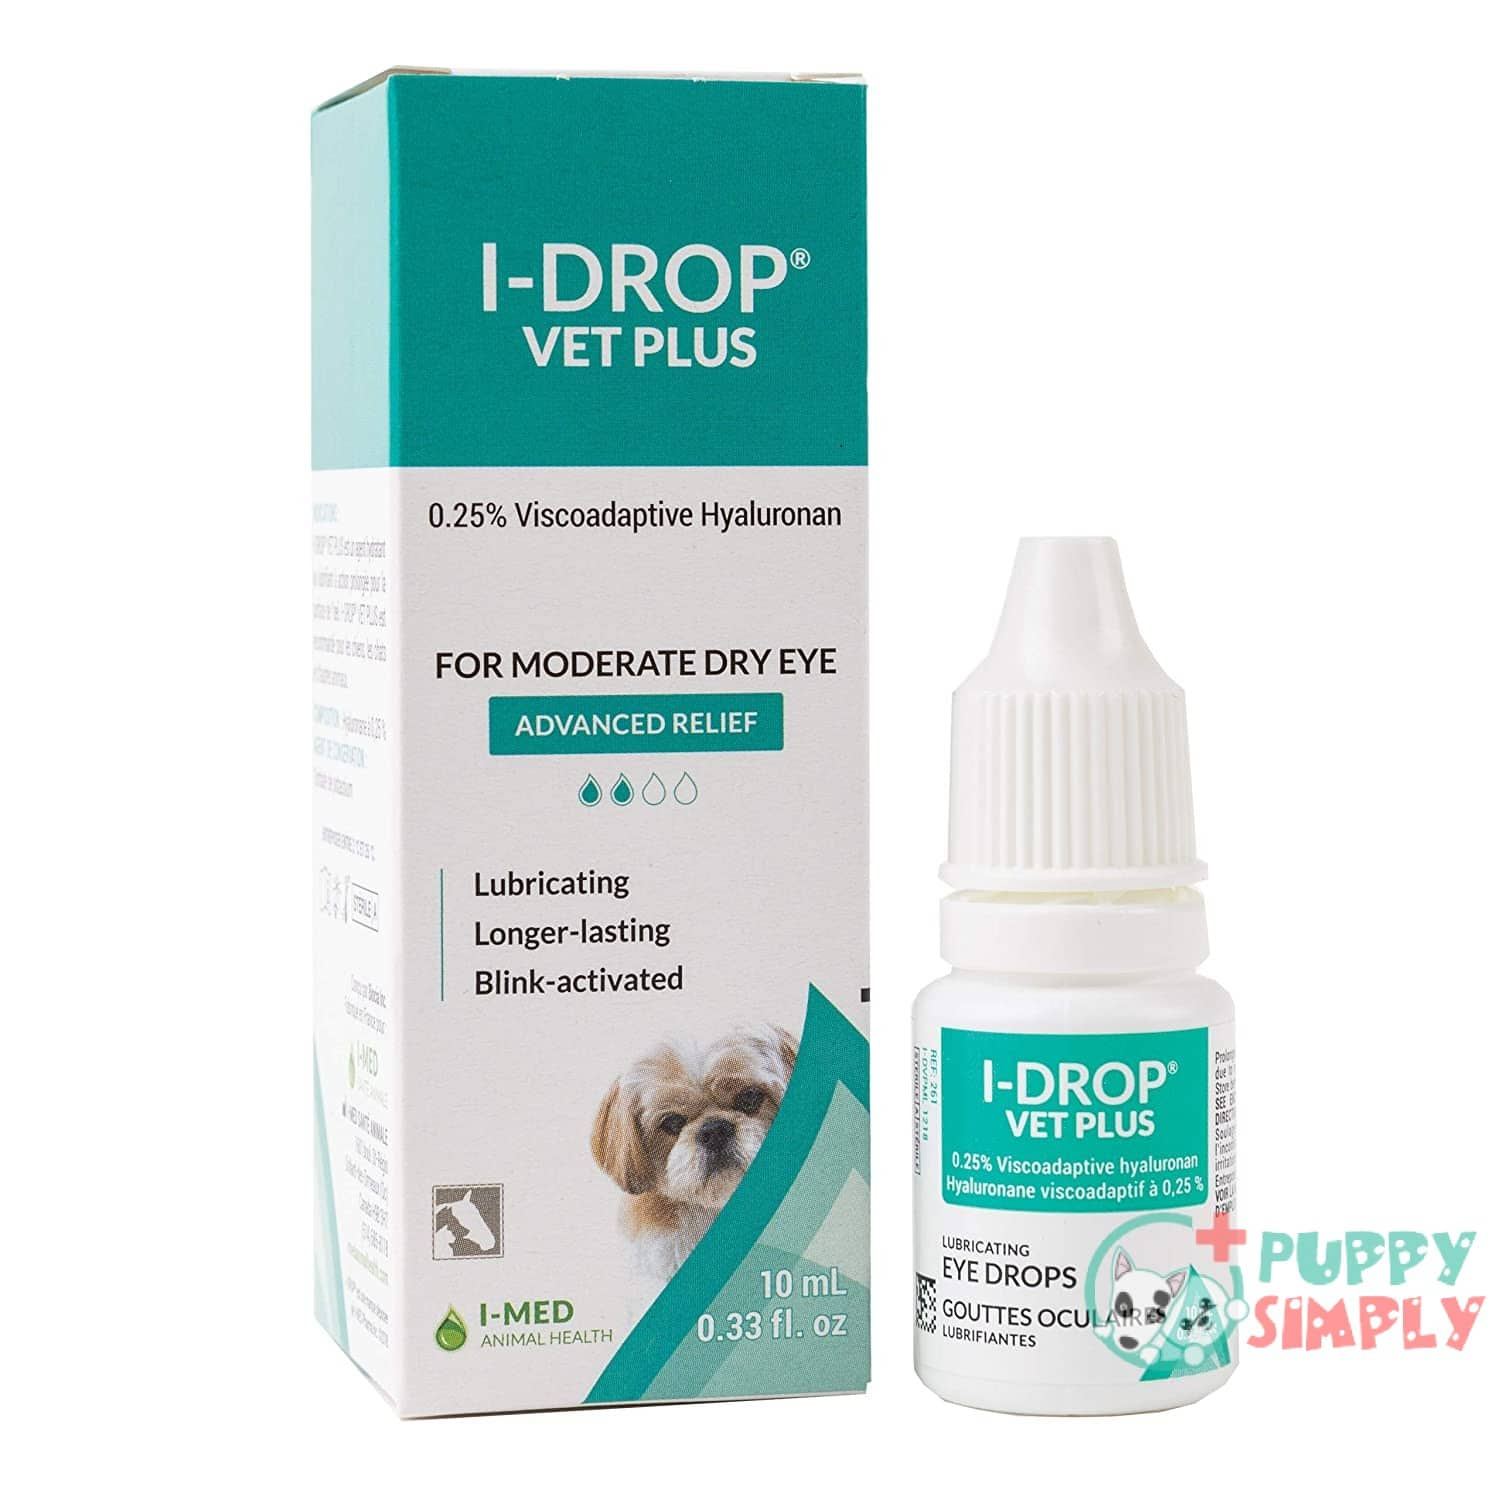 I-DROP VET PLUS Lubricating Eye